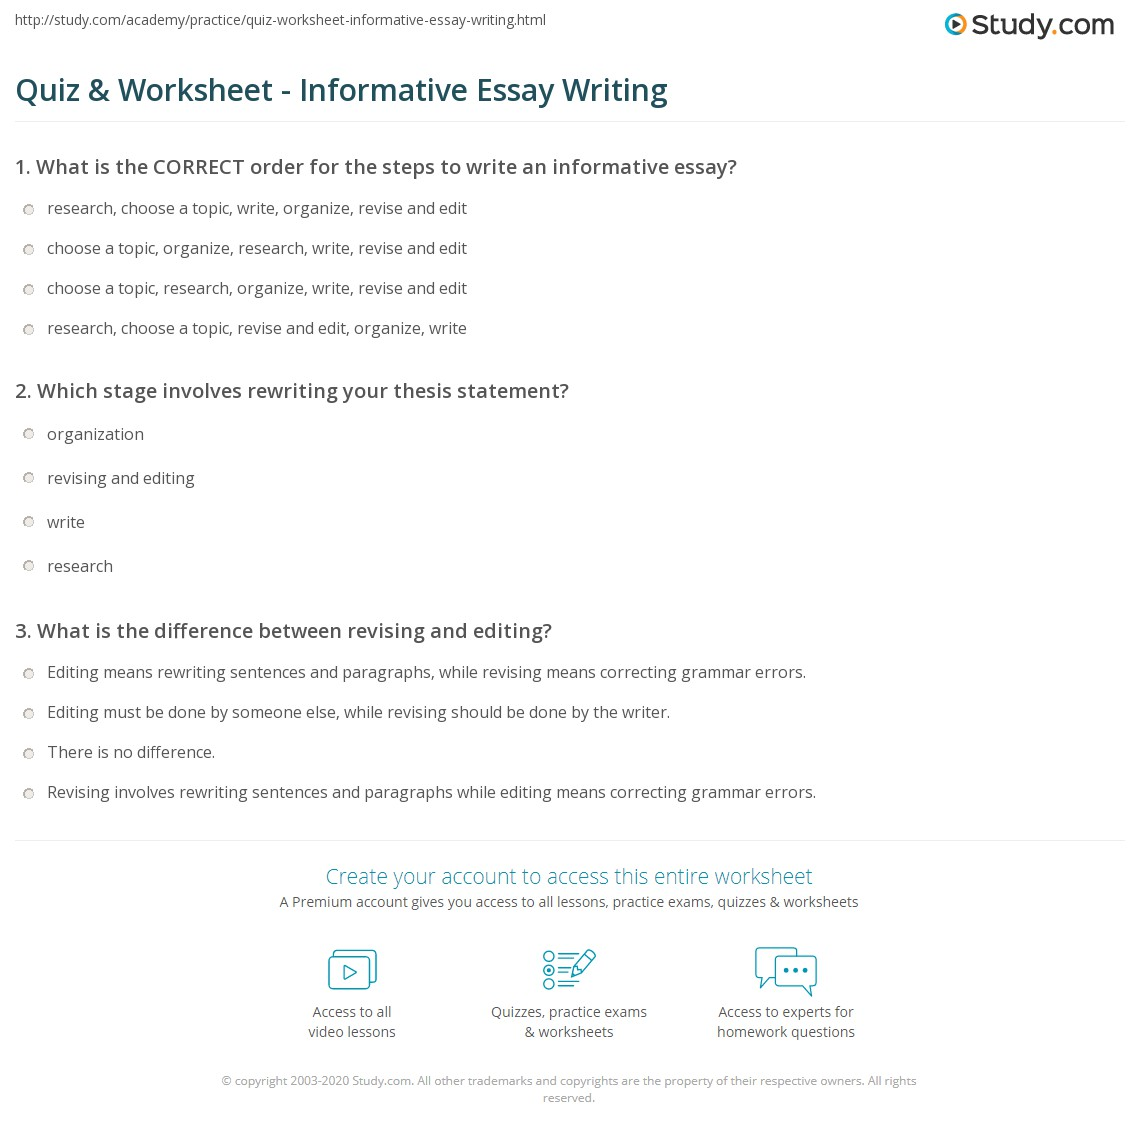 write an essay quiz 100 easy argumentative essay topic ideas with research links and sample i like how you were able to write the questions without giving away your position on each.